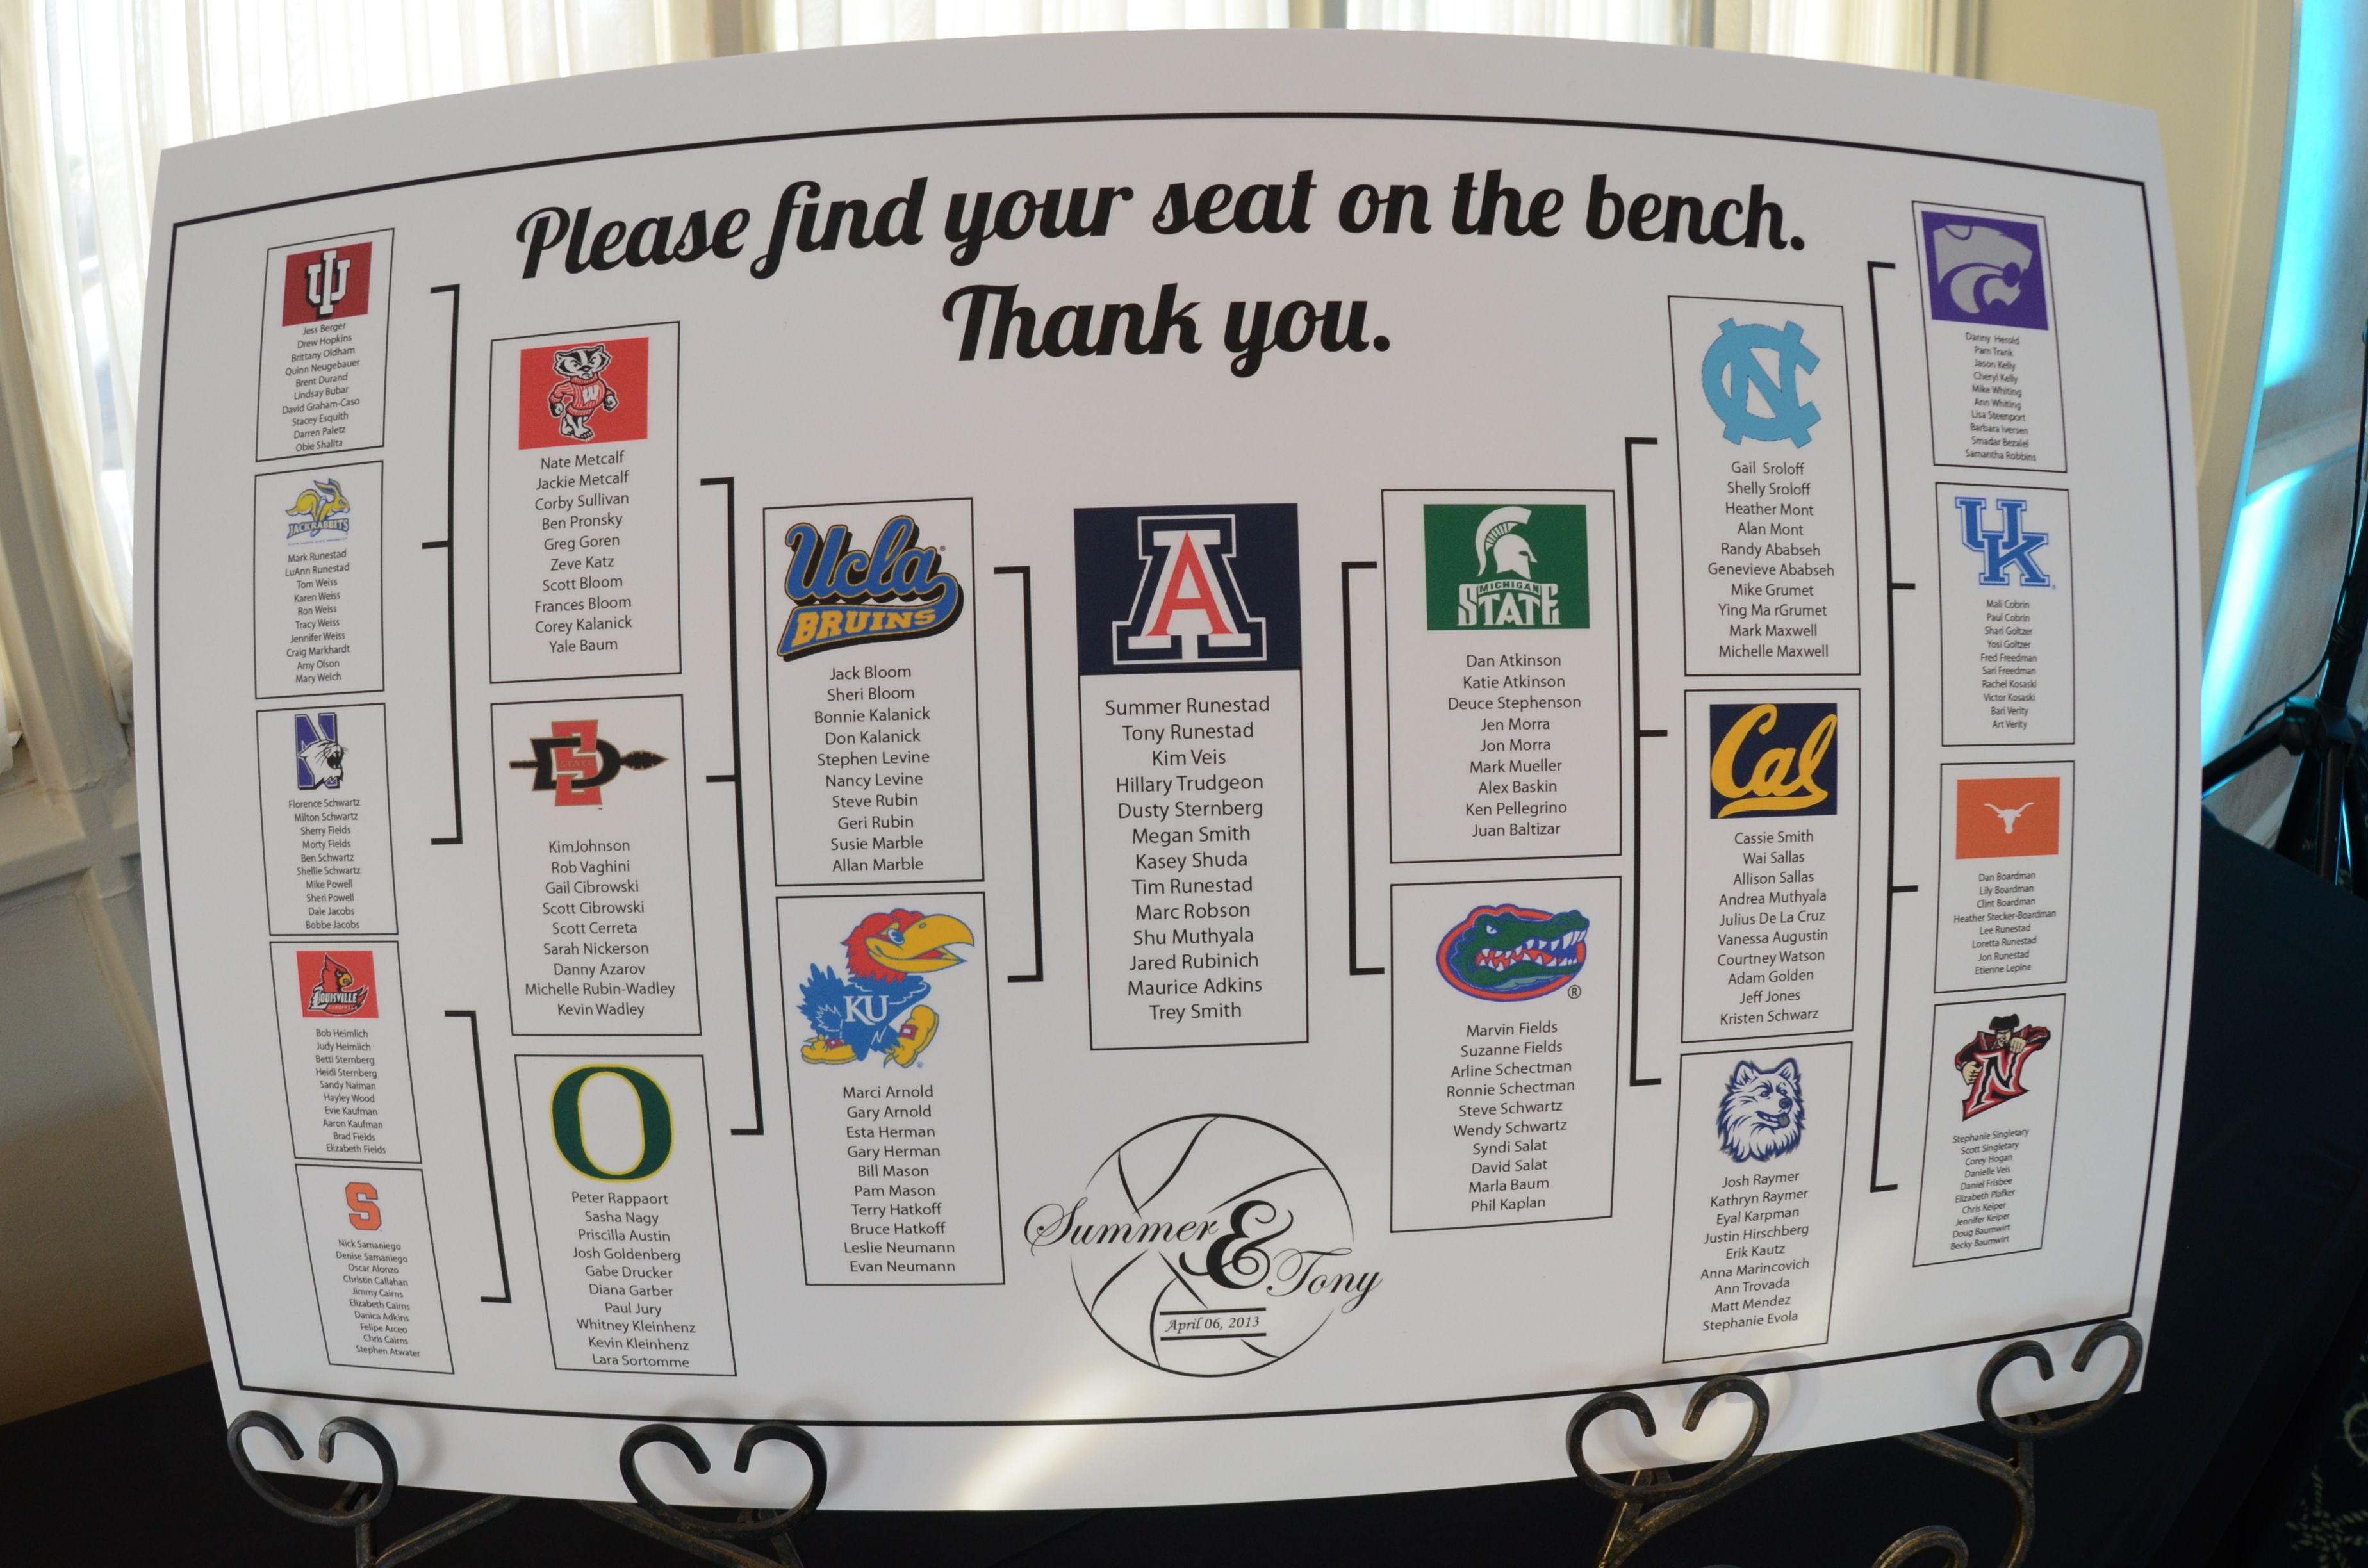 This Was Our Seating Chart For The Wedding Just Like Tournament